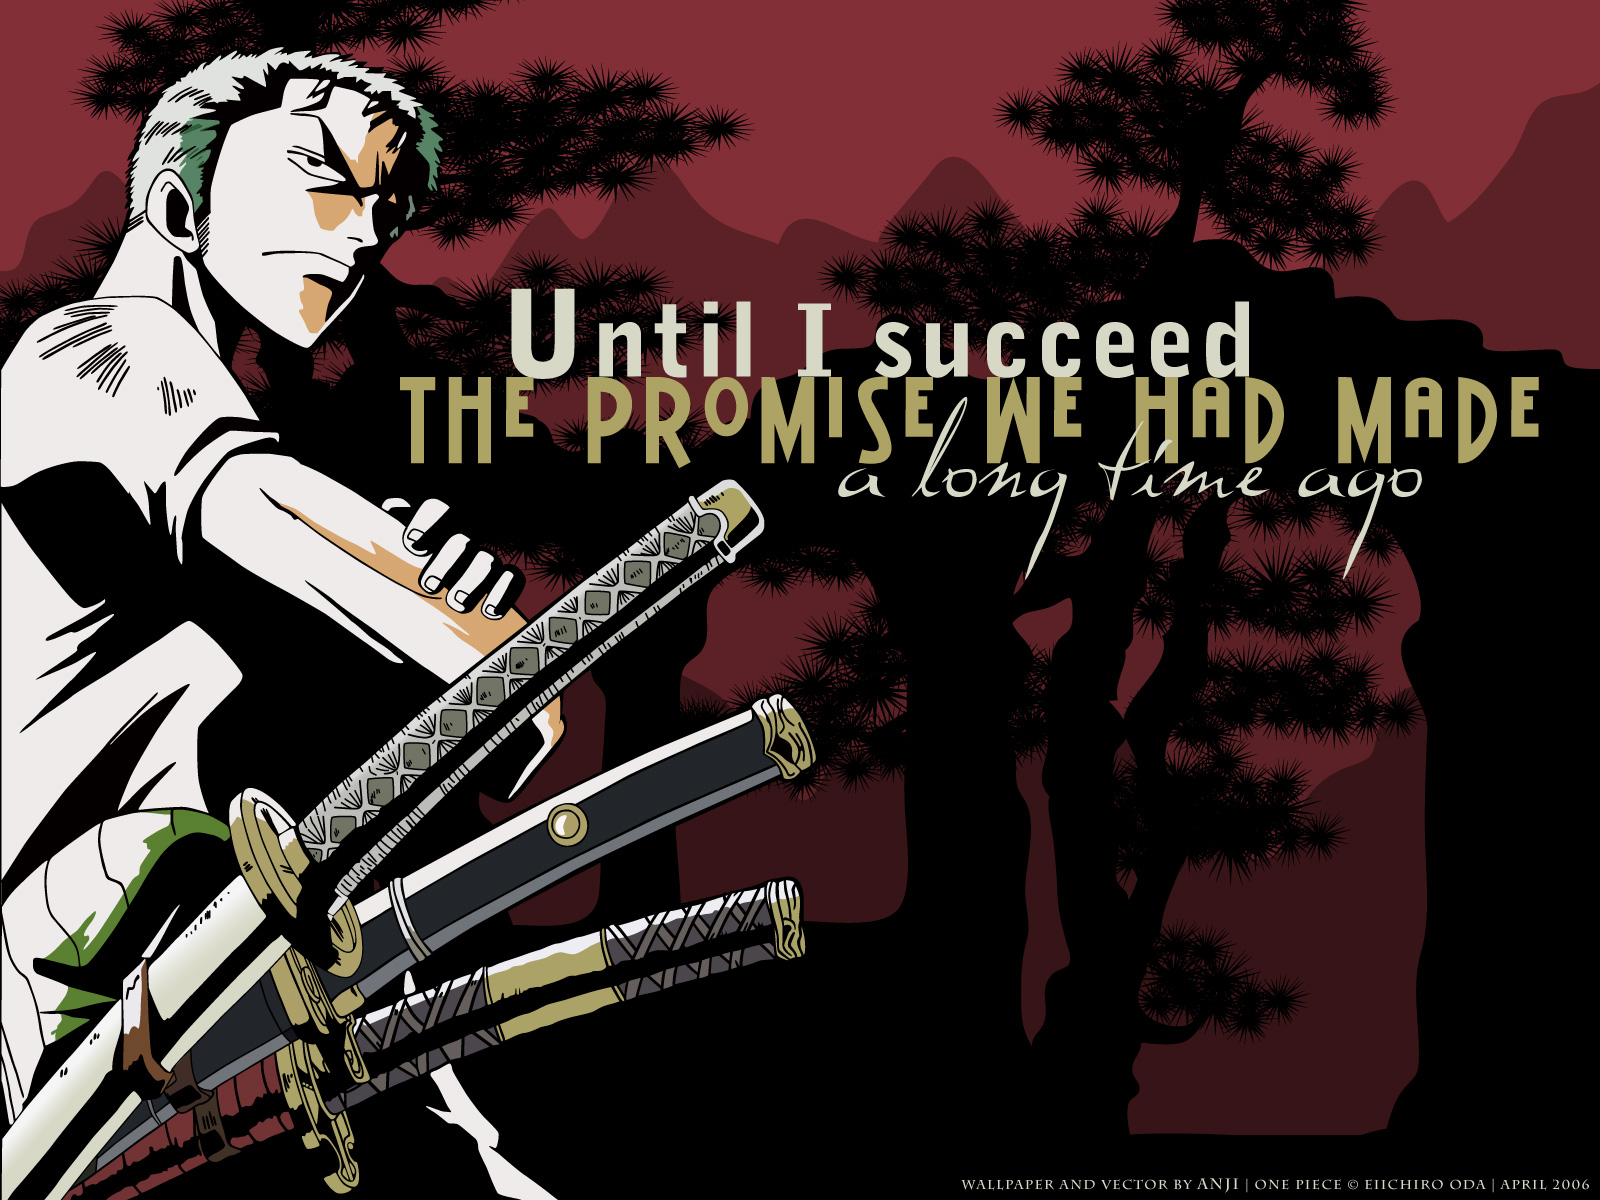 http://4.bp.blogspot.com/_k-P7GVX26es/TLP2o9lJ6LI/AAAAAAAAAHg/0LzDYbhaaxo/s1600/one-piece-wallpaper-roronoa-zoro-in-red-big.jpg